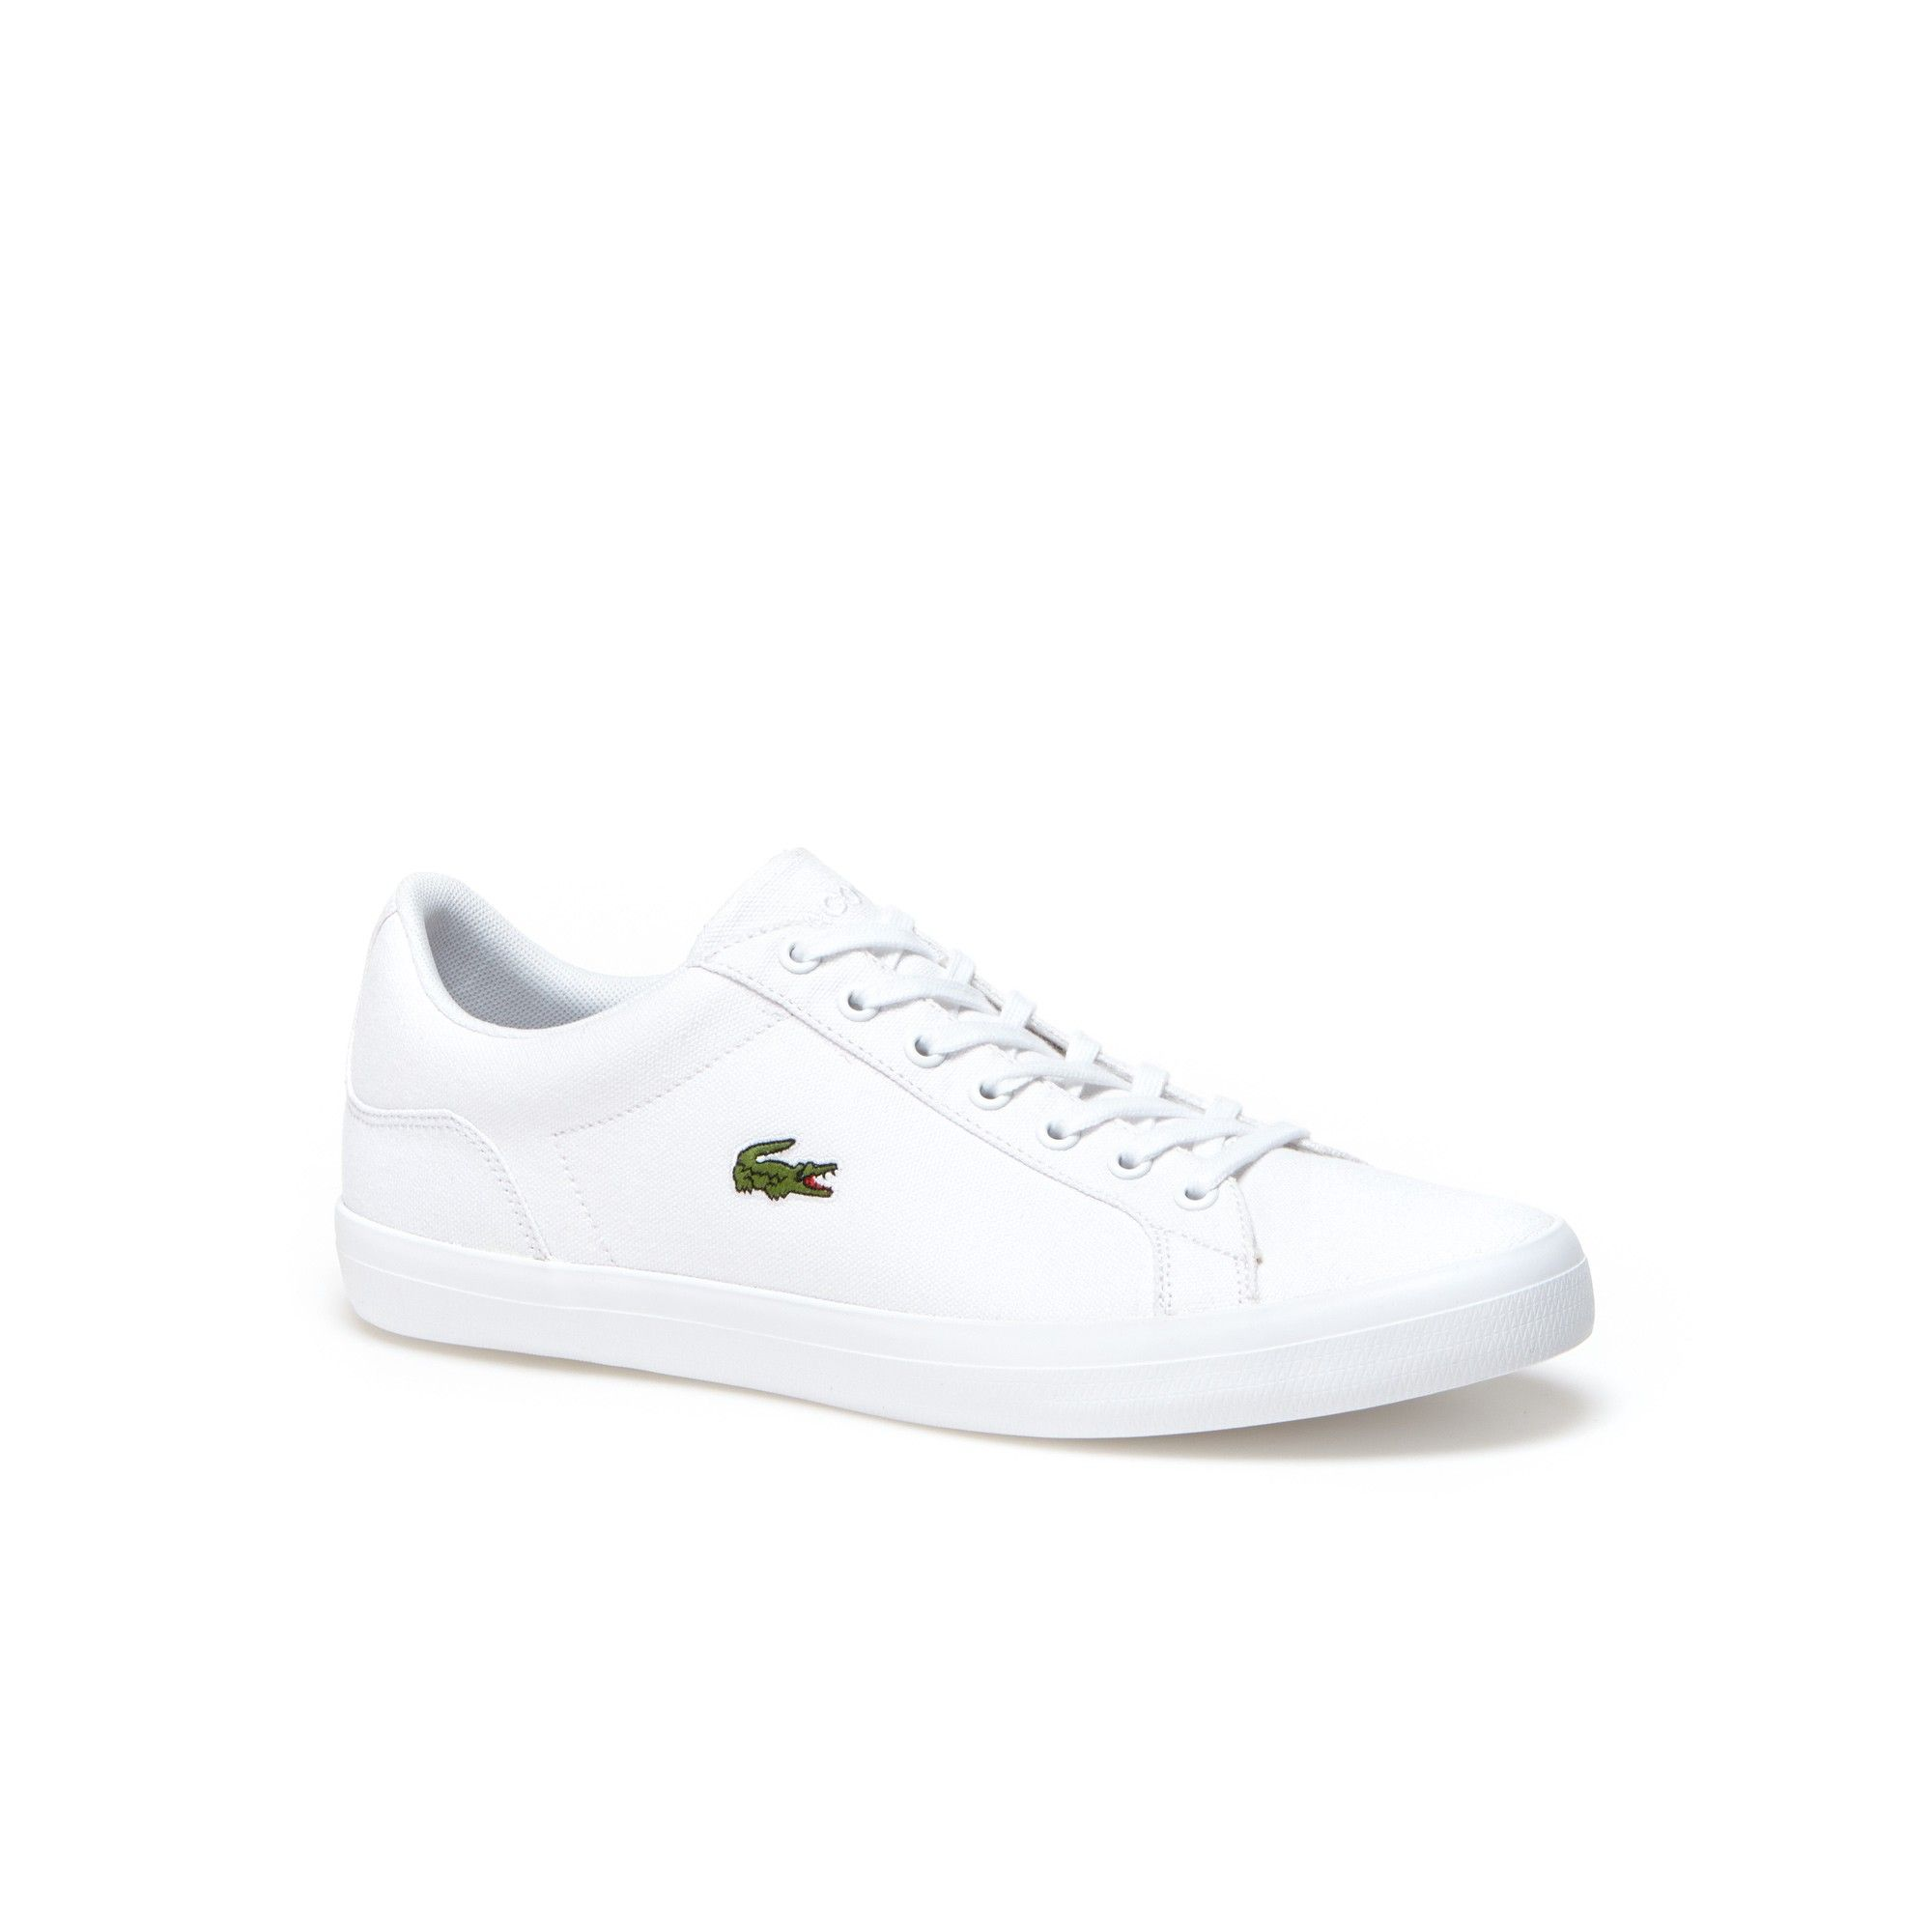 58f1ccd6e92ea7 LACOSTE Men s Lerond Canvas Sneakers - white.  lacoste  shoes ...